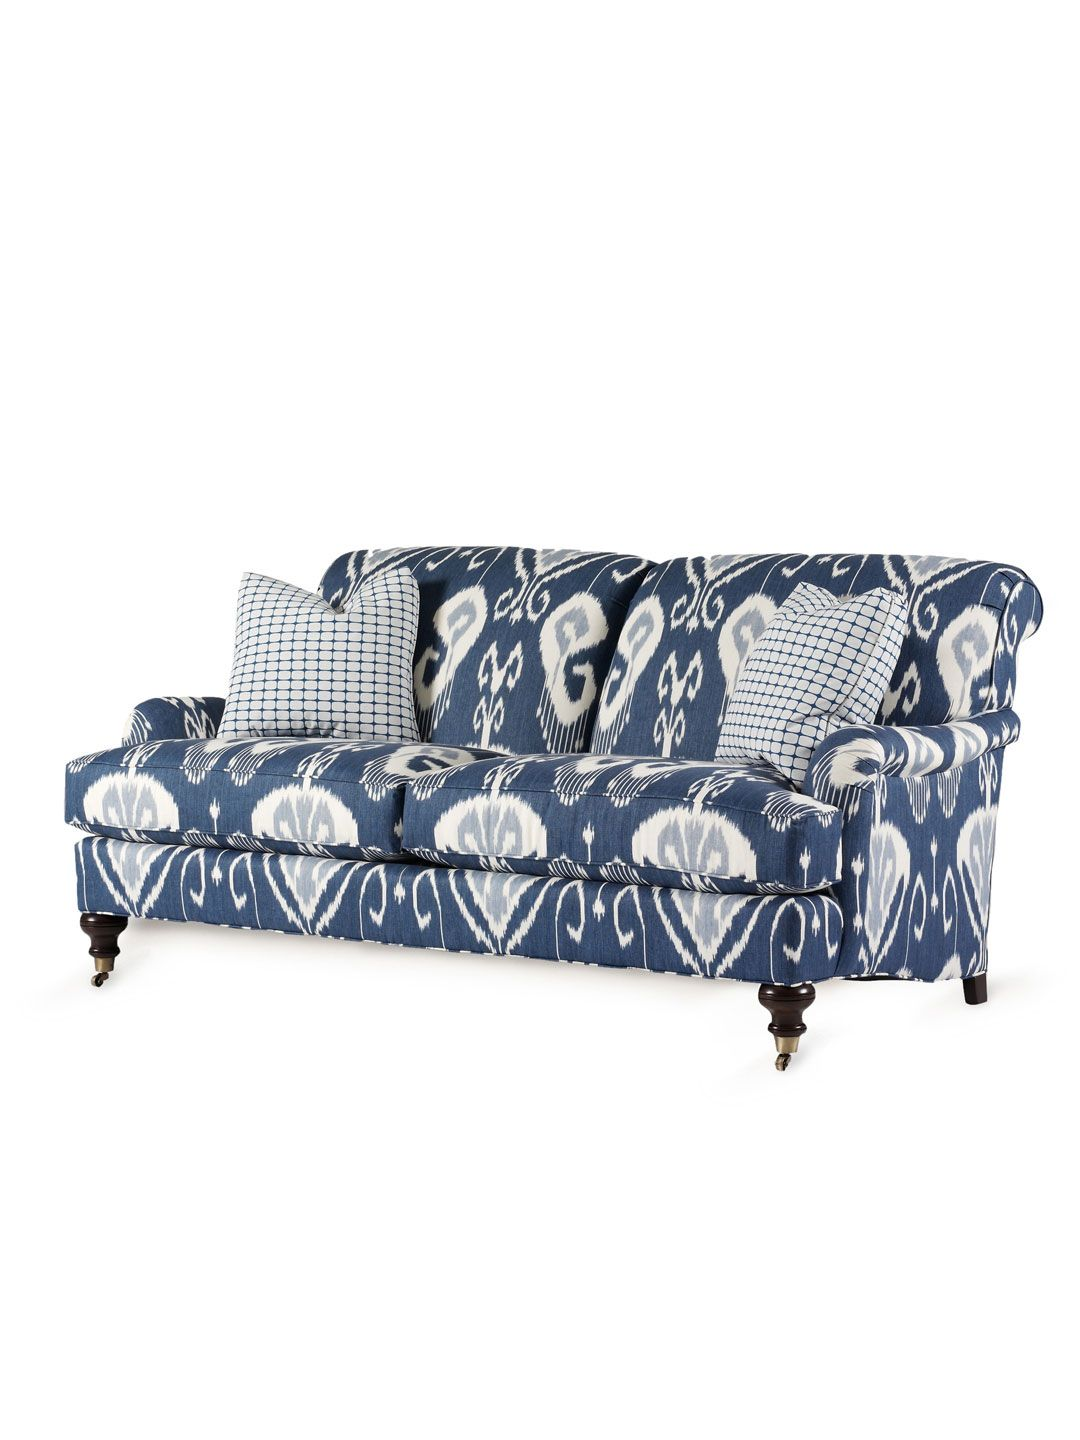 By Design Blue Ikat Sofa